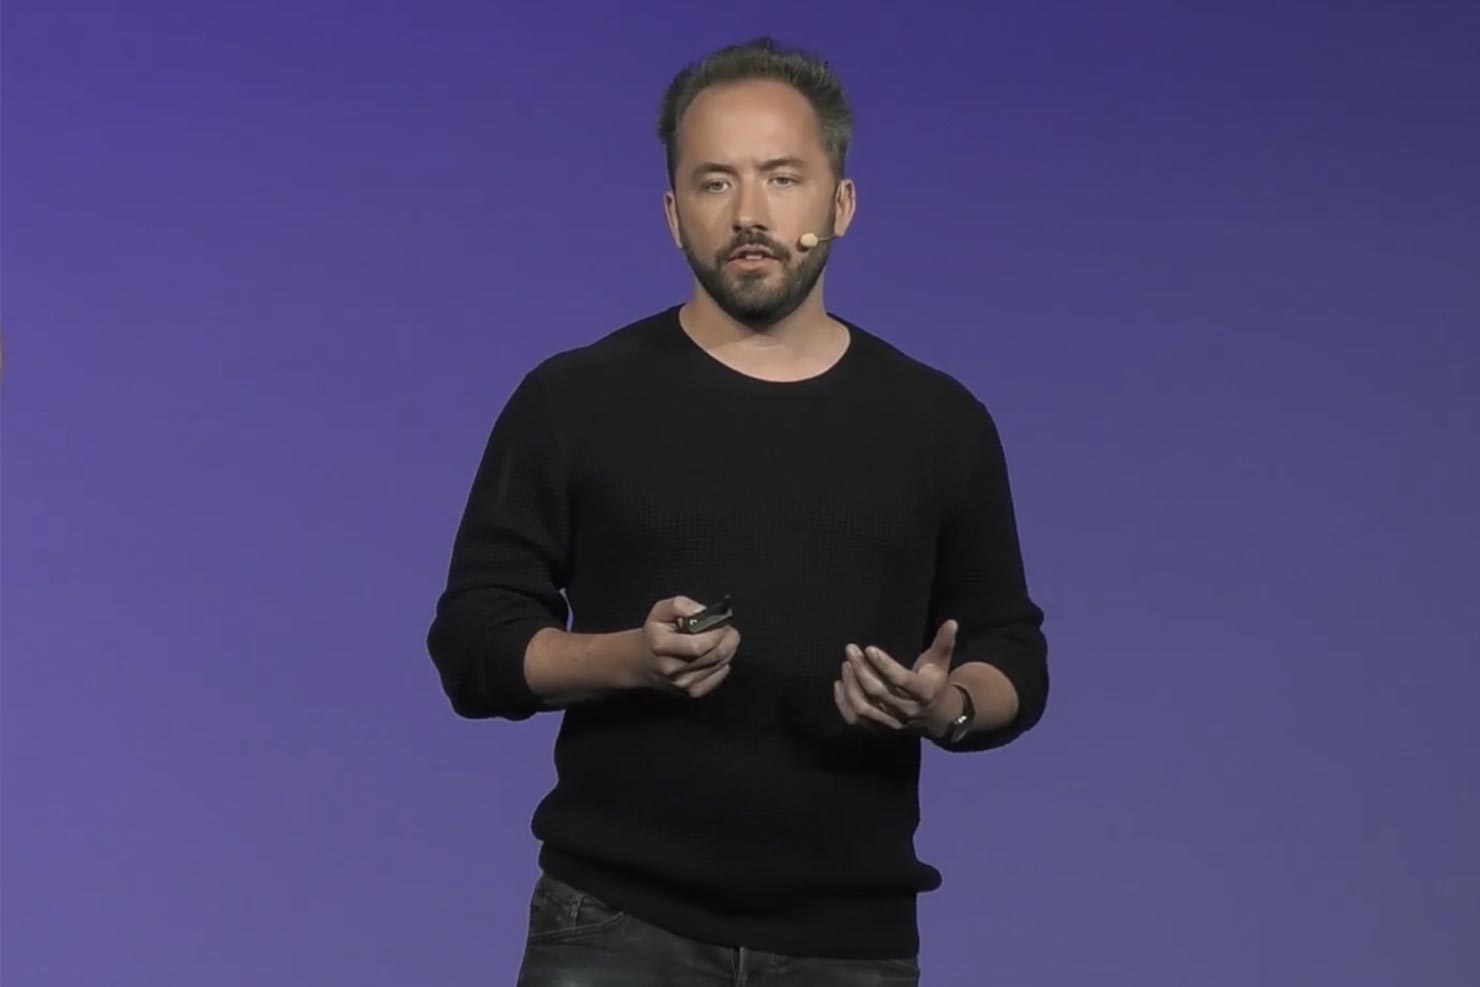 Drew Houston, CEO for Dropbox, snakker på en scene